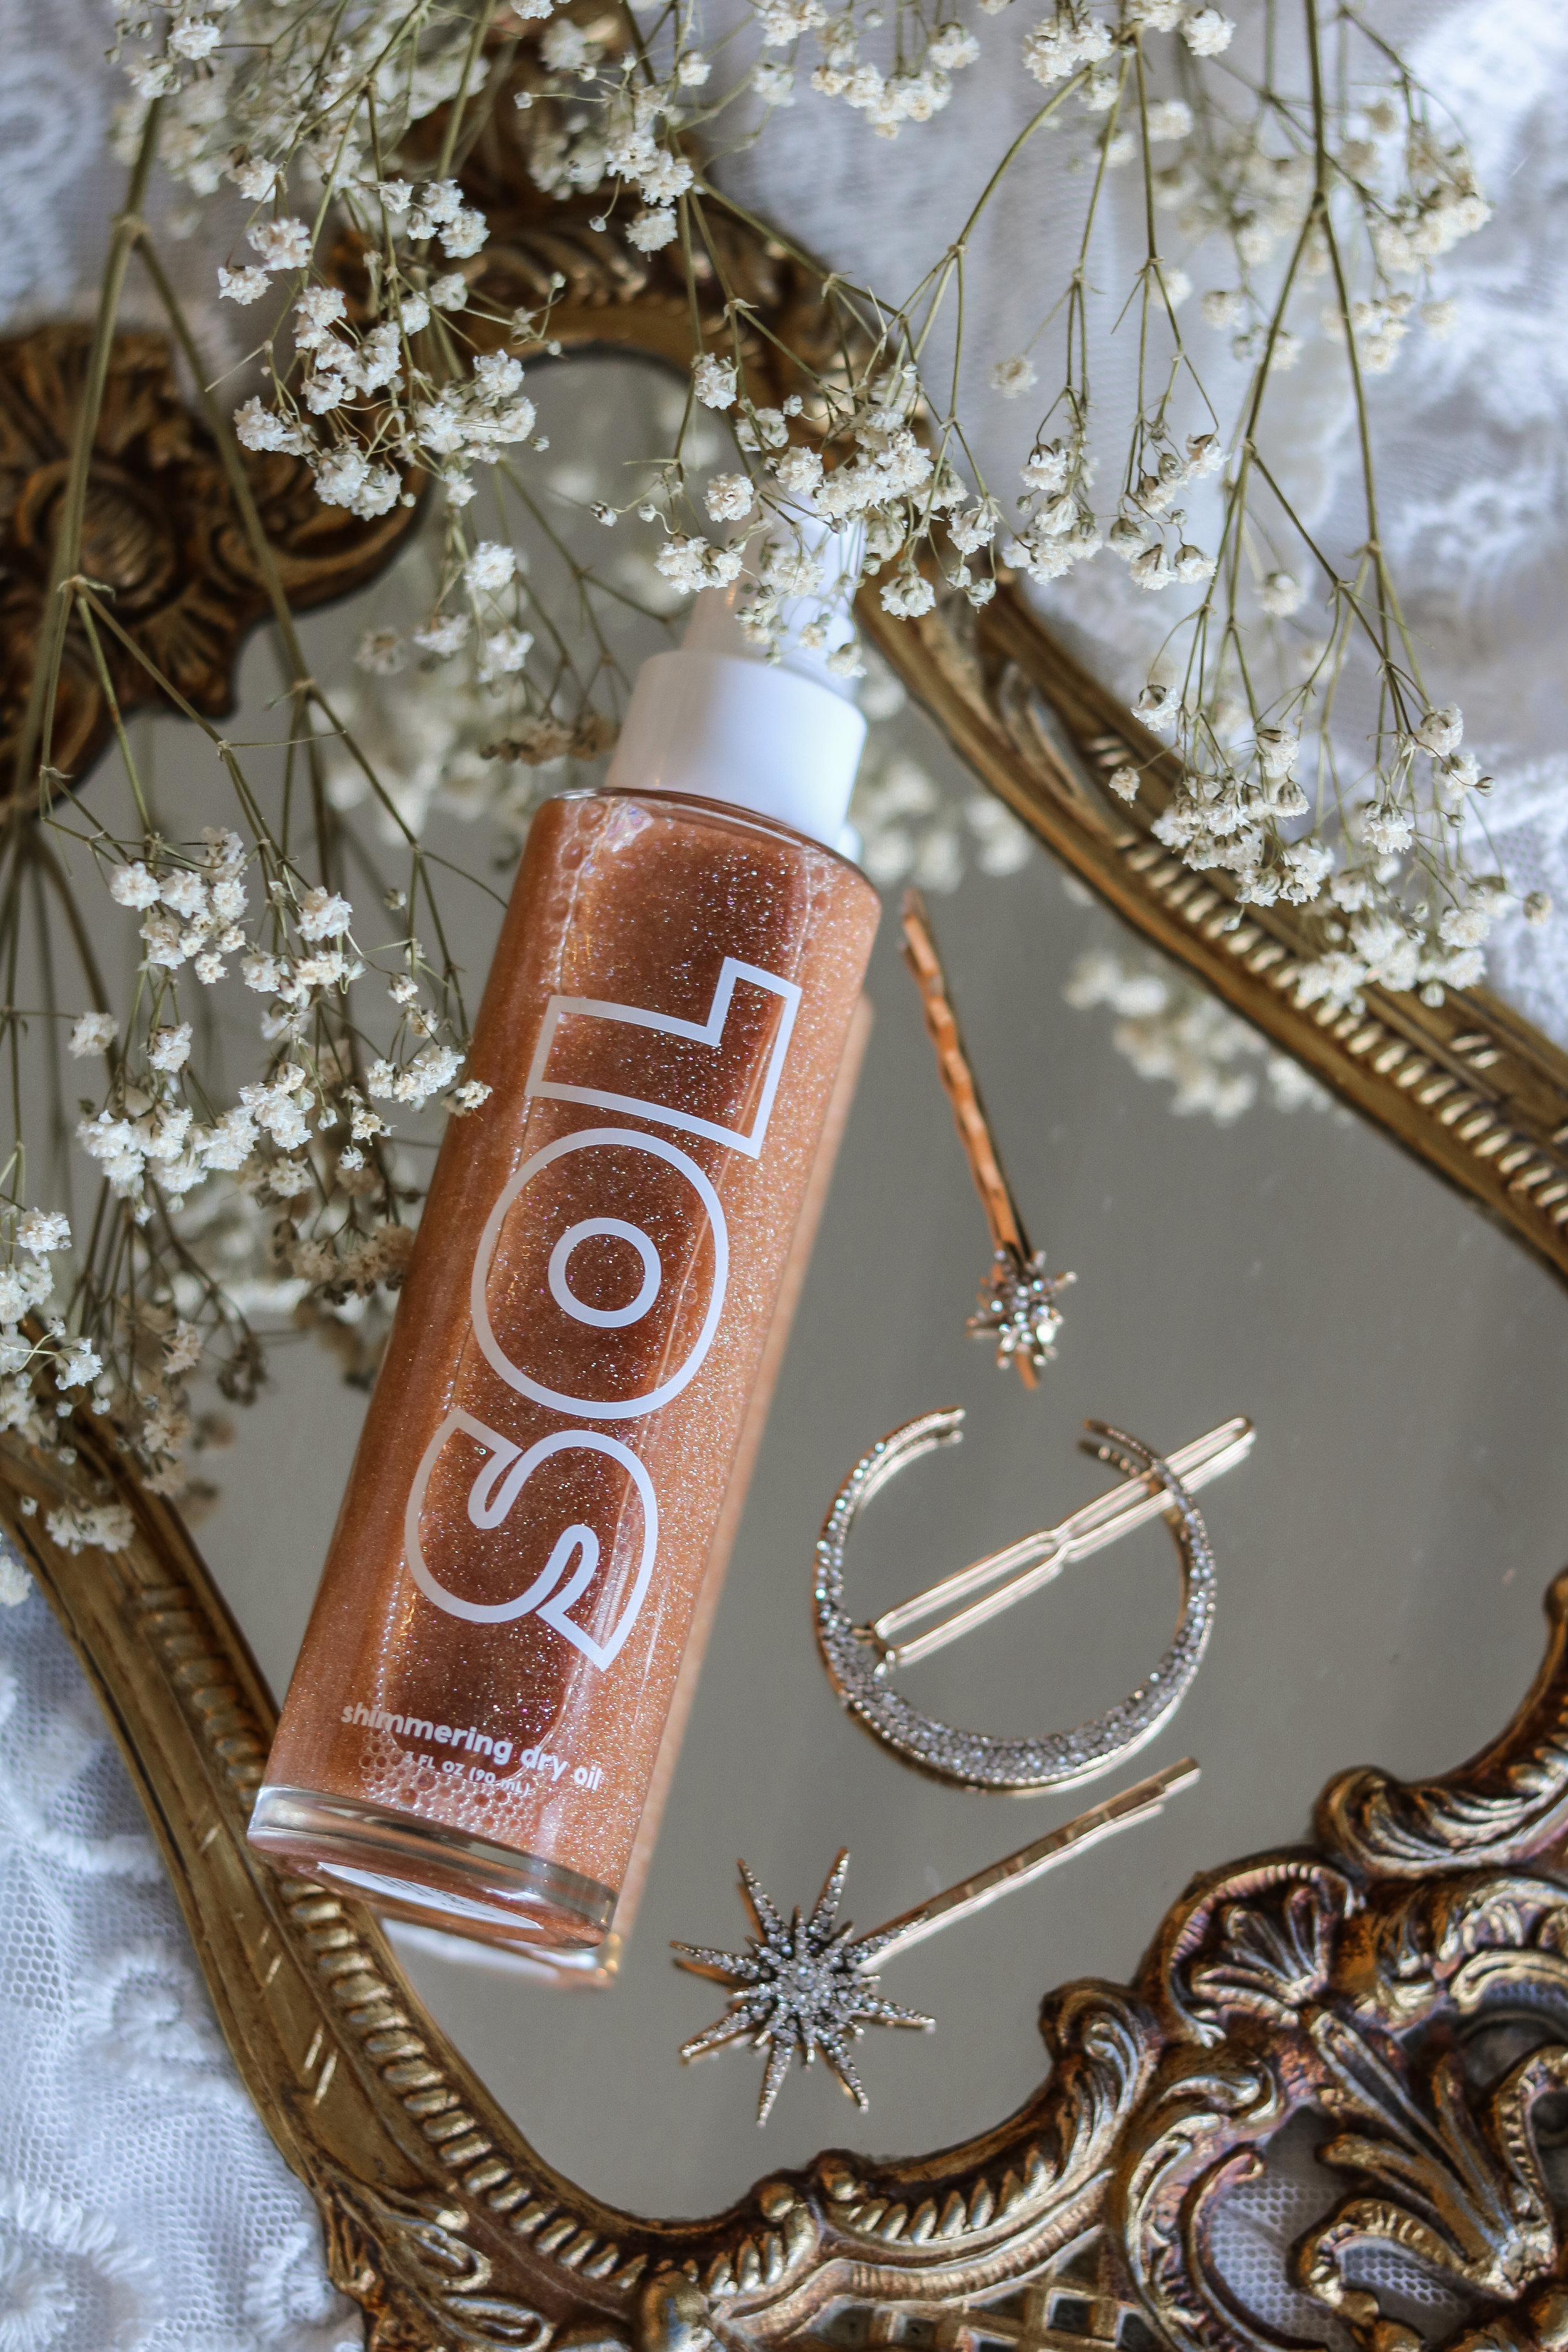 The Hungarian Brunette Sol Shimmering Dry Body Oil Review (Warm Gold Swatch) (2 of 3).jpg